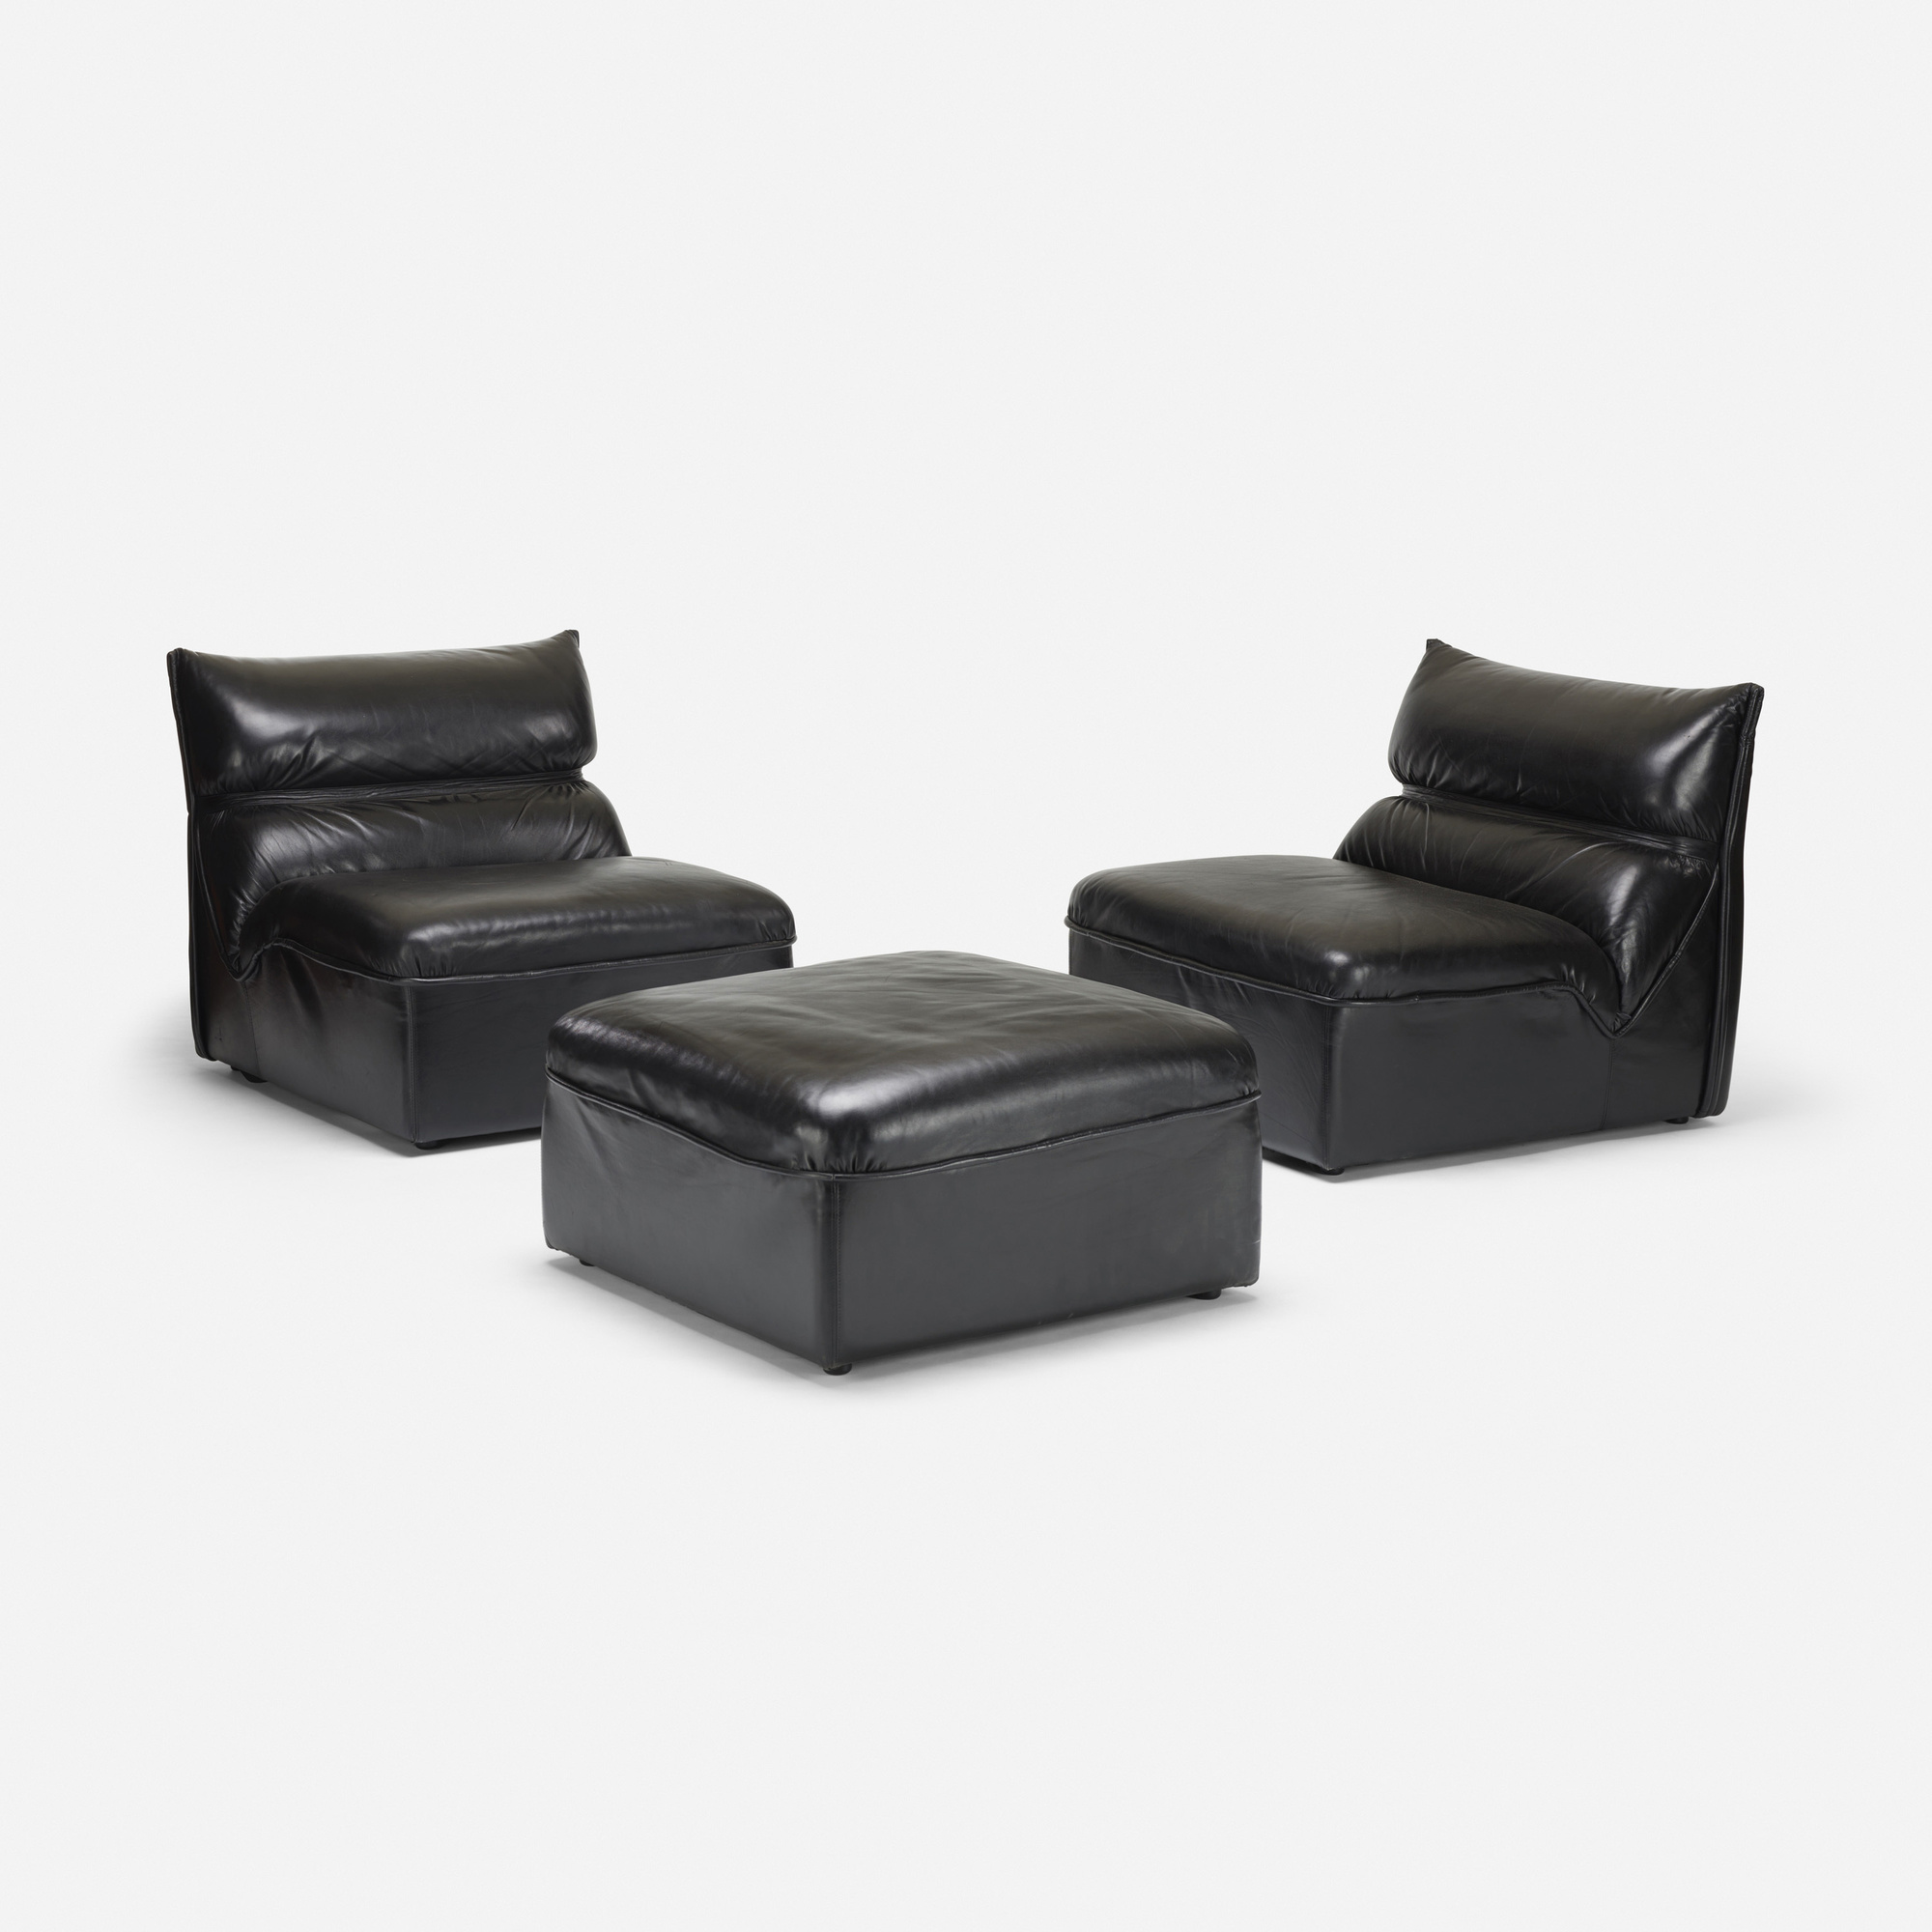 535: Mariani / lounge chairs, pair and ottoman (1 of 2)